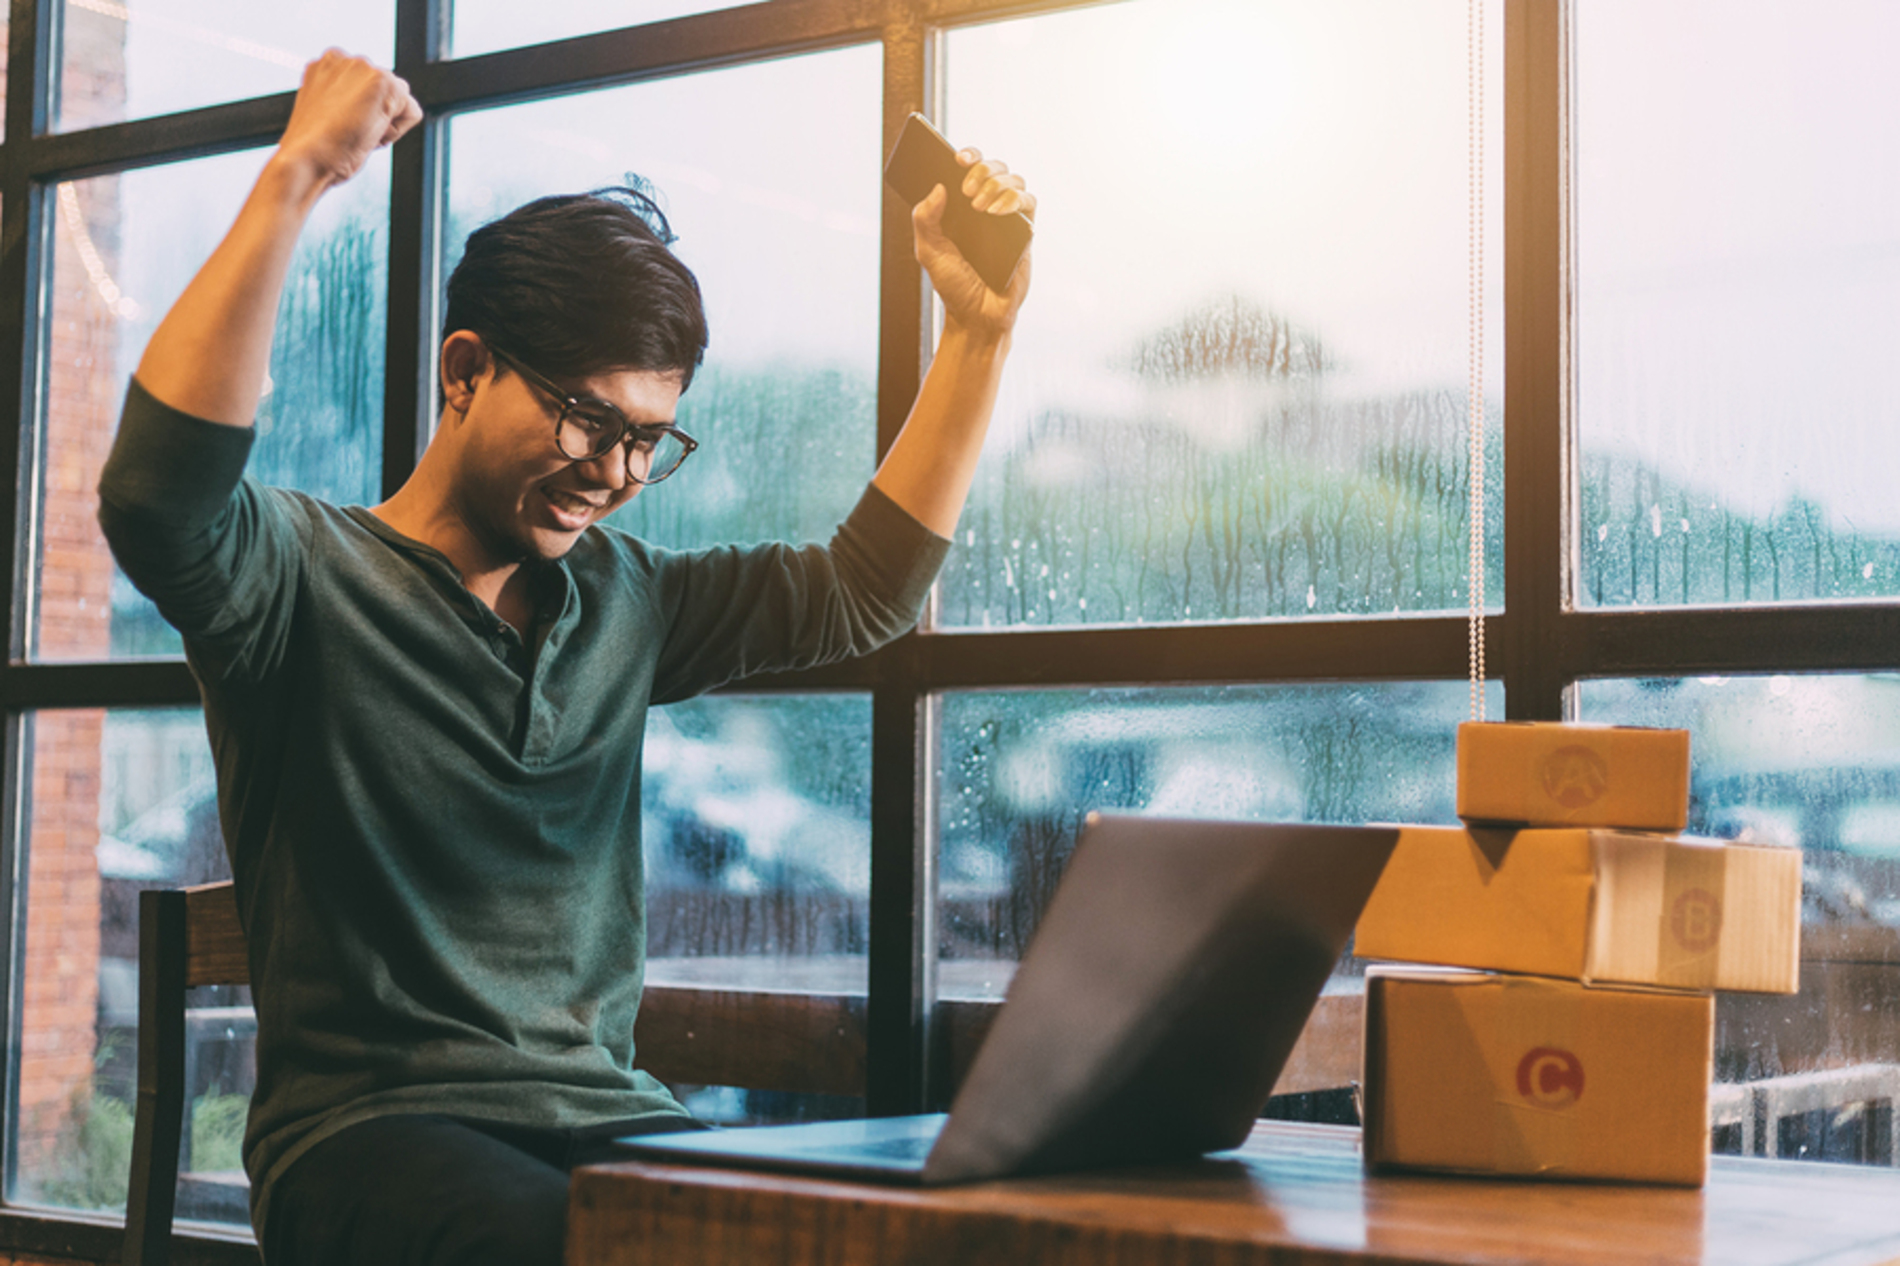 Man holding his arms up in triumph while sitting at a table with a laptop.